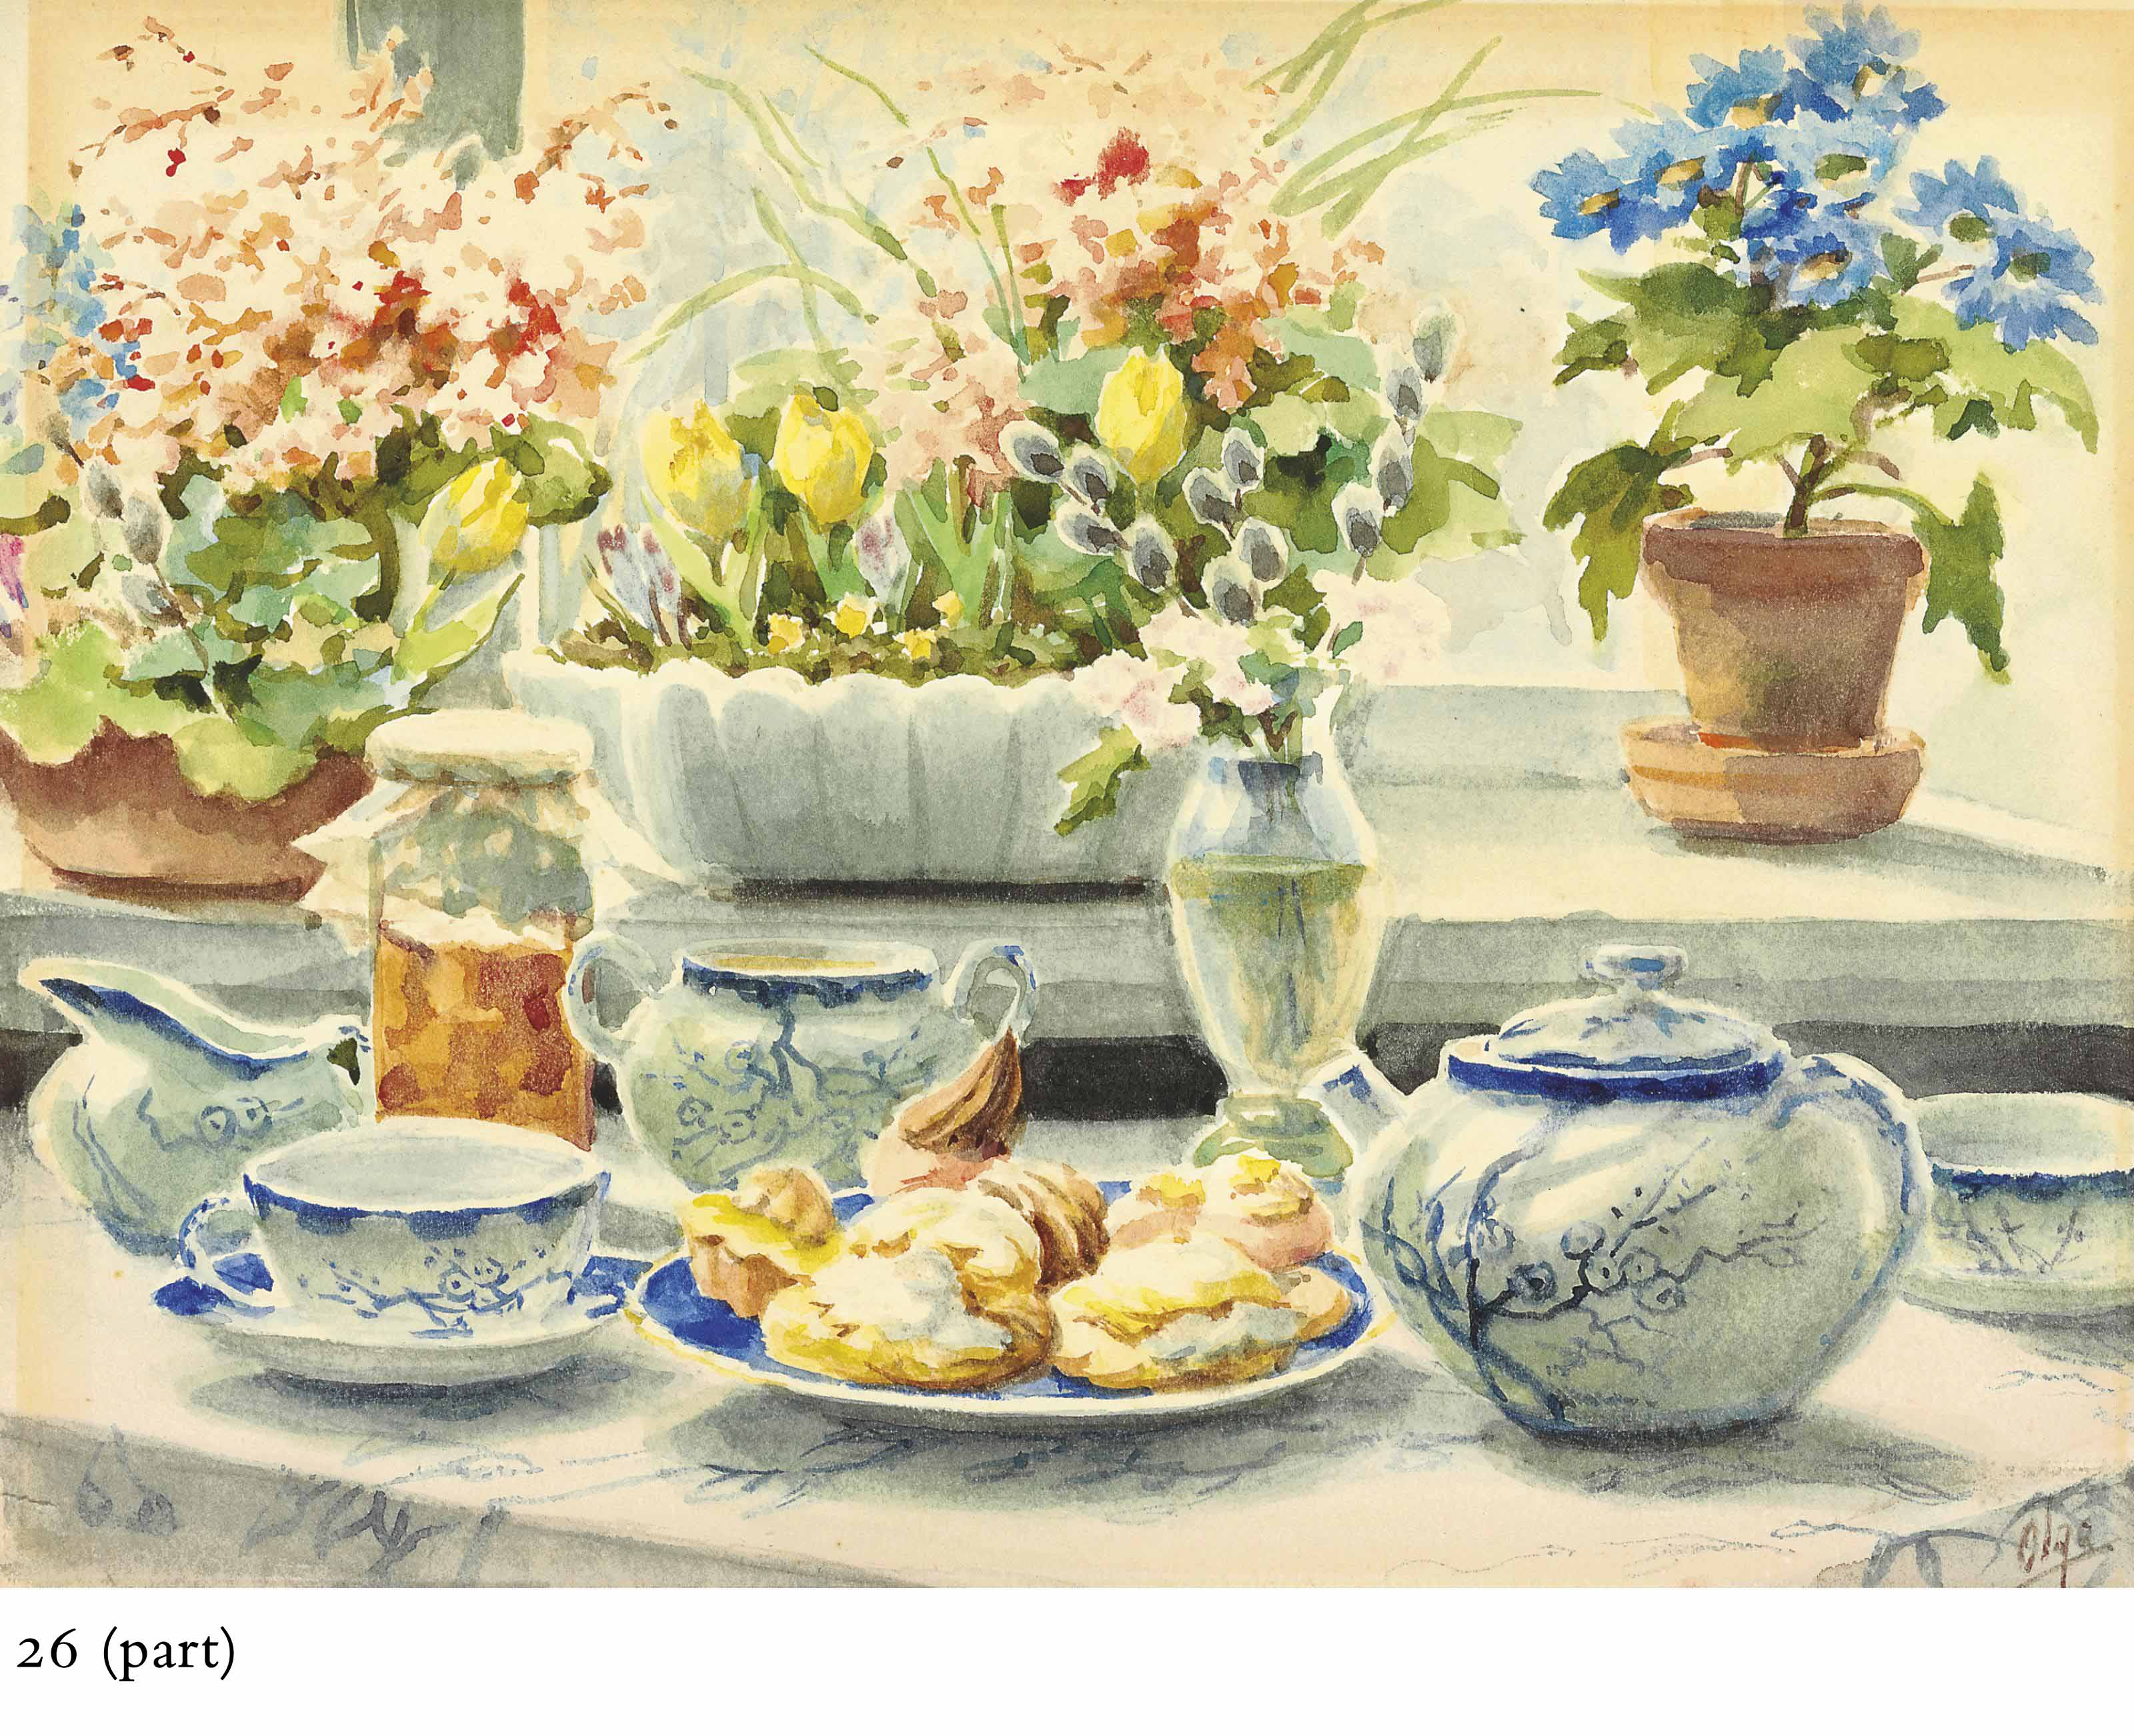 Tea set with tulips and violets